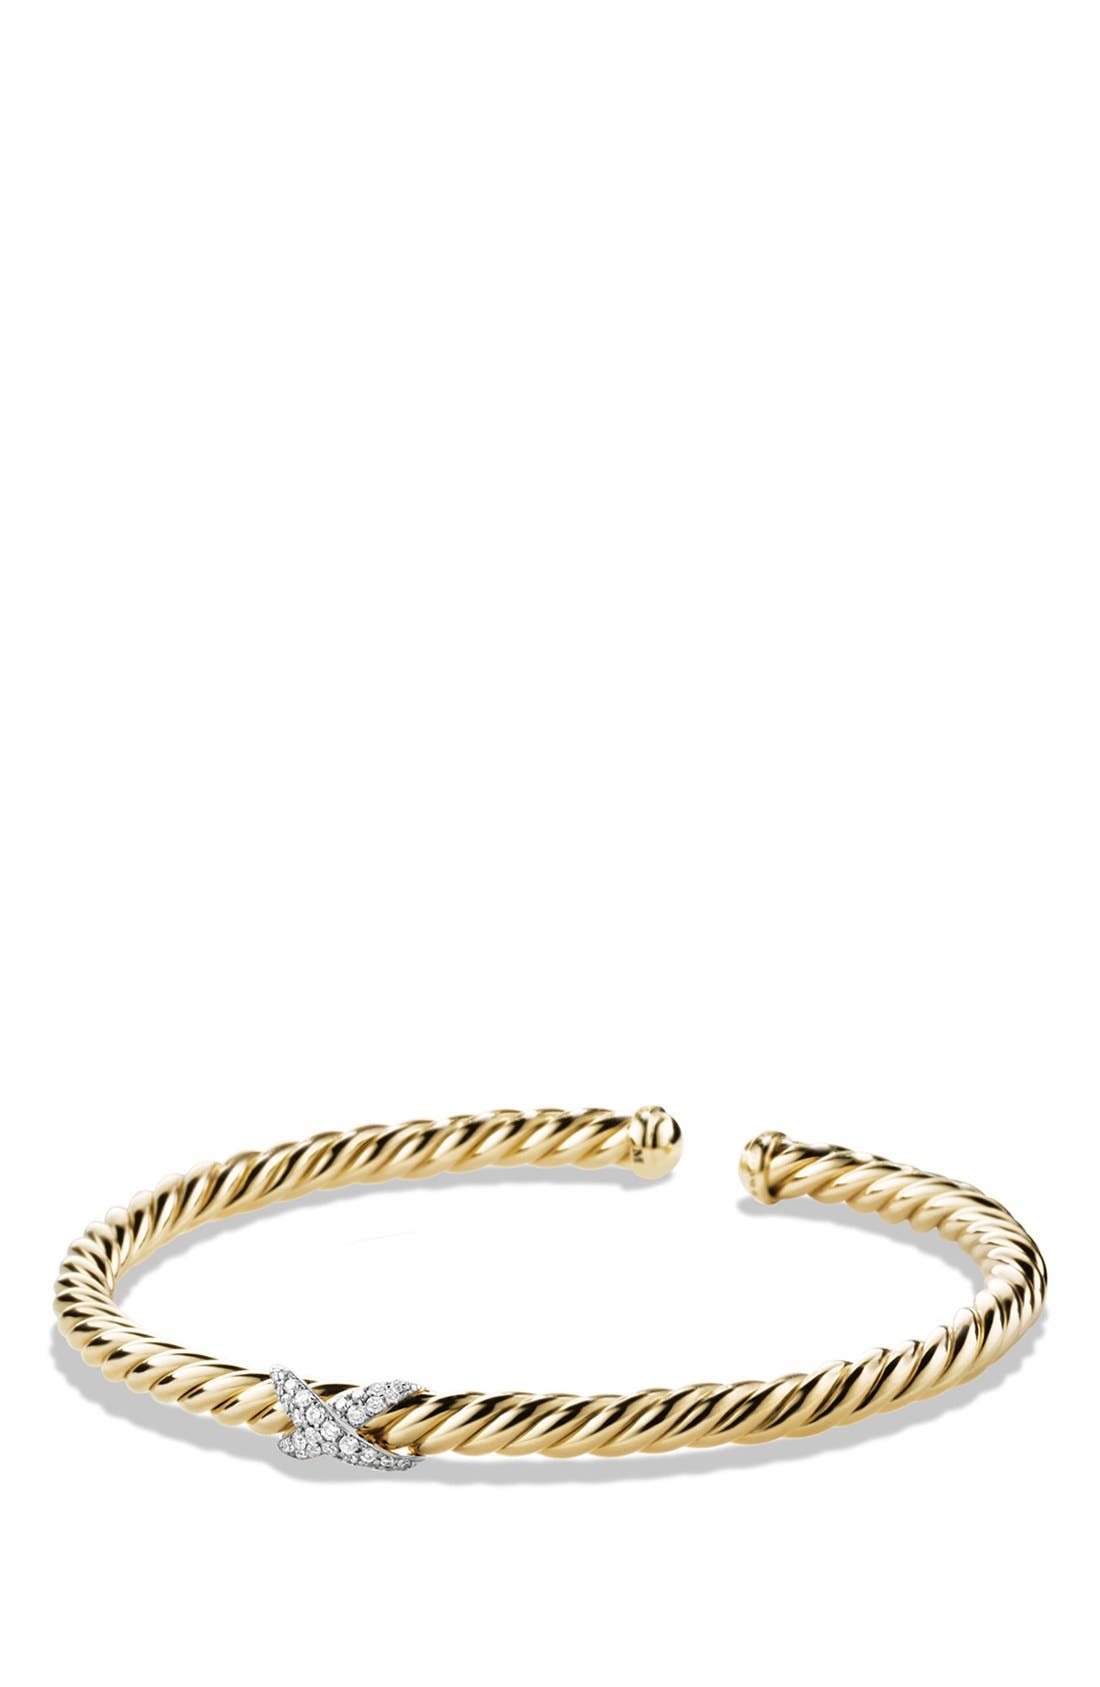 'X - Cablespira' Bracelet with Diamonds in 18k Gold,                             Main thumbnail 1, color,                             DIAMOND